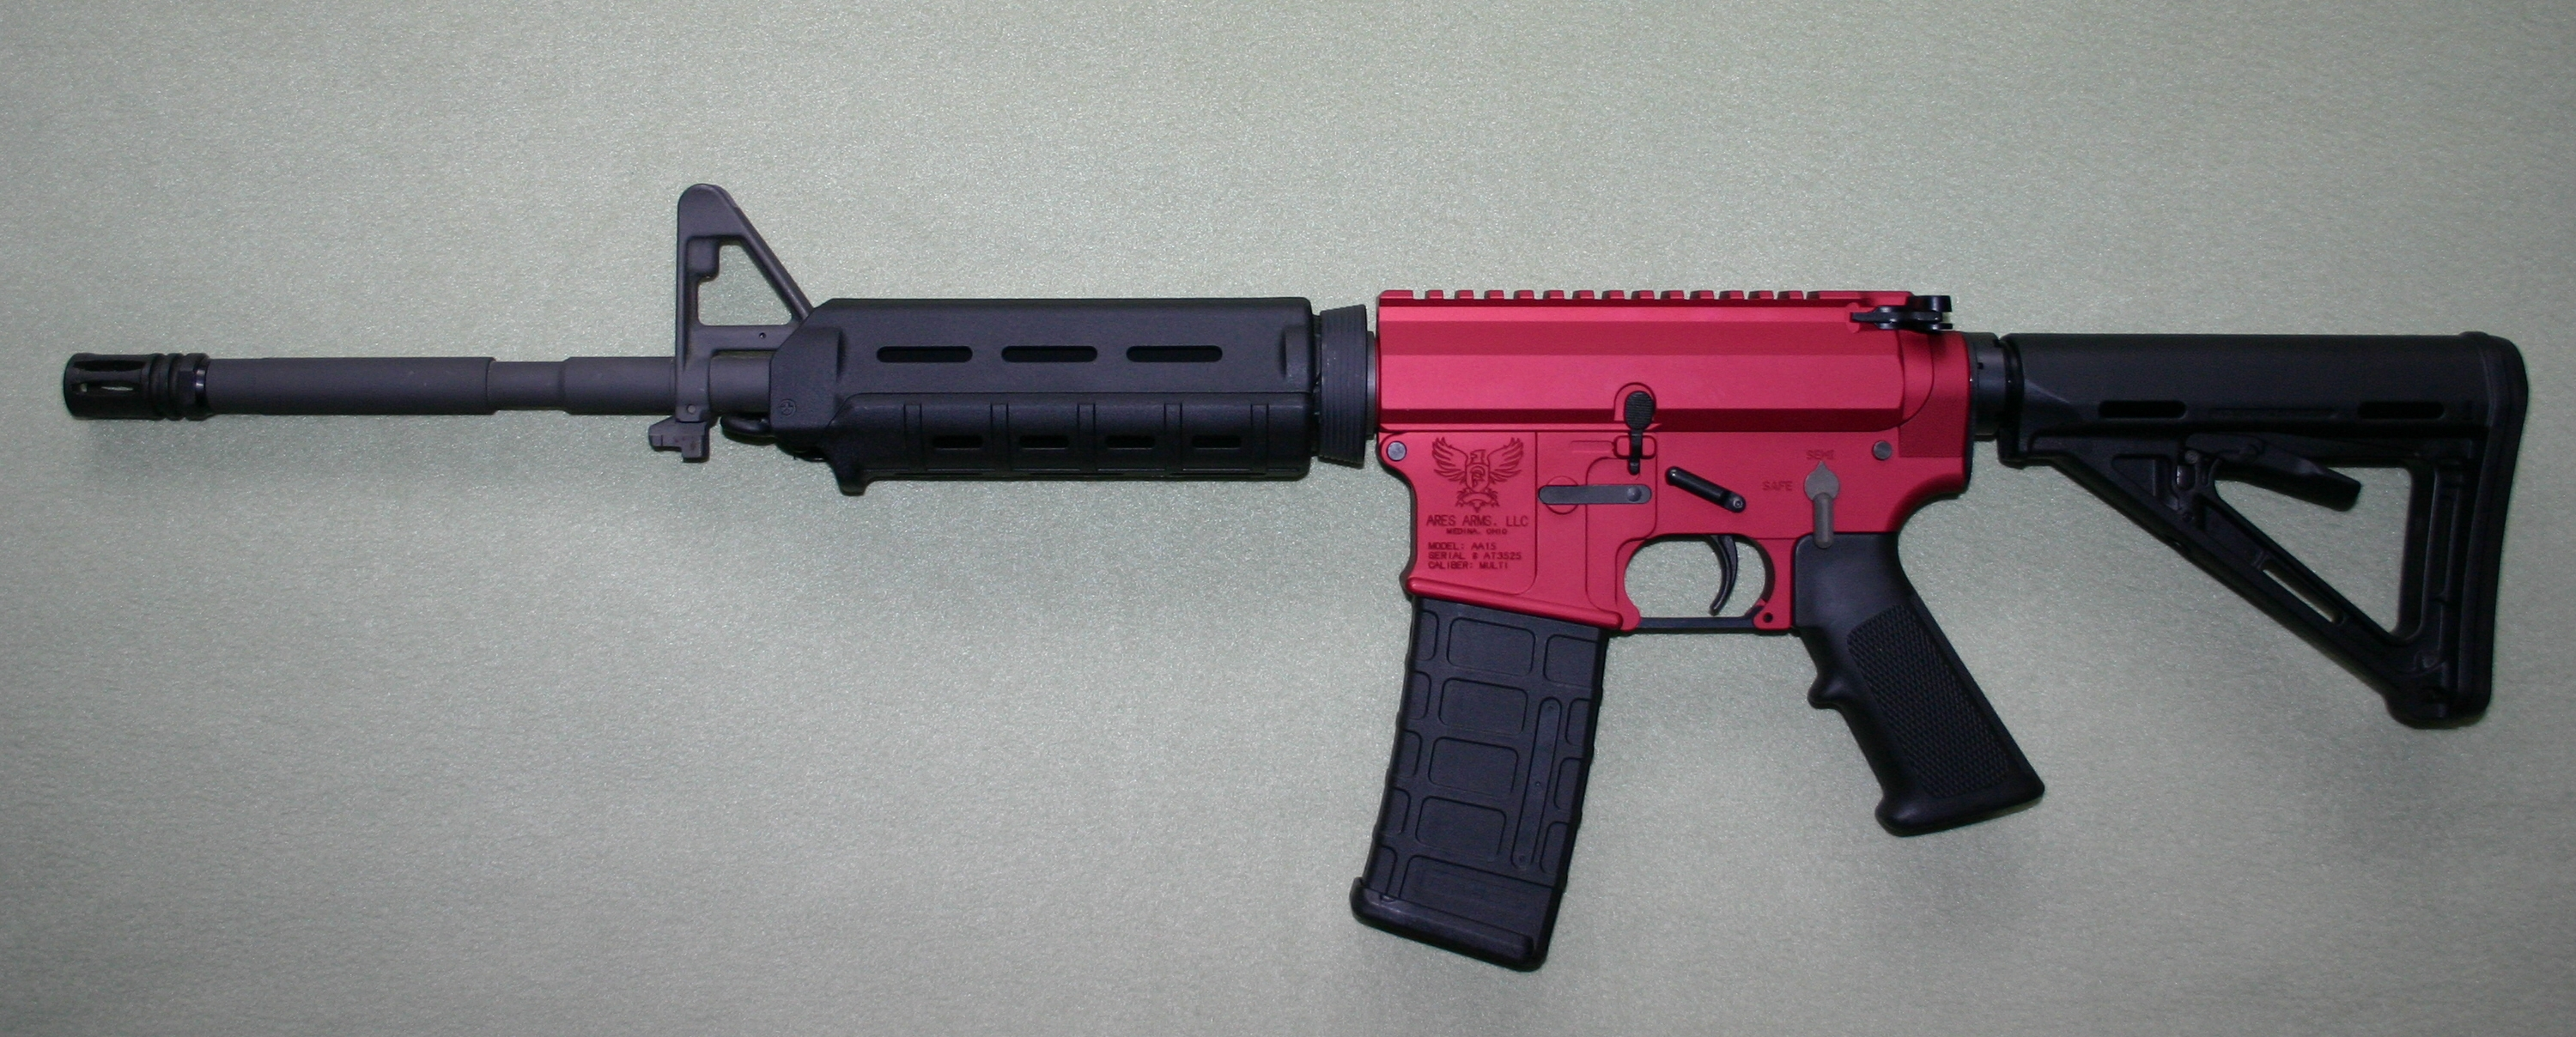 Ares Arms AA-15 Red M4-Style - Magpul Stock and Handguards